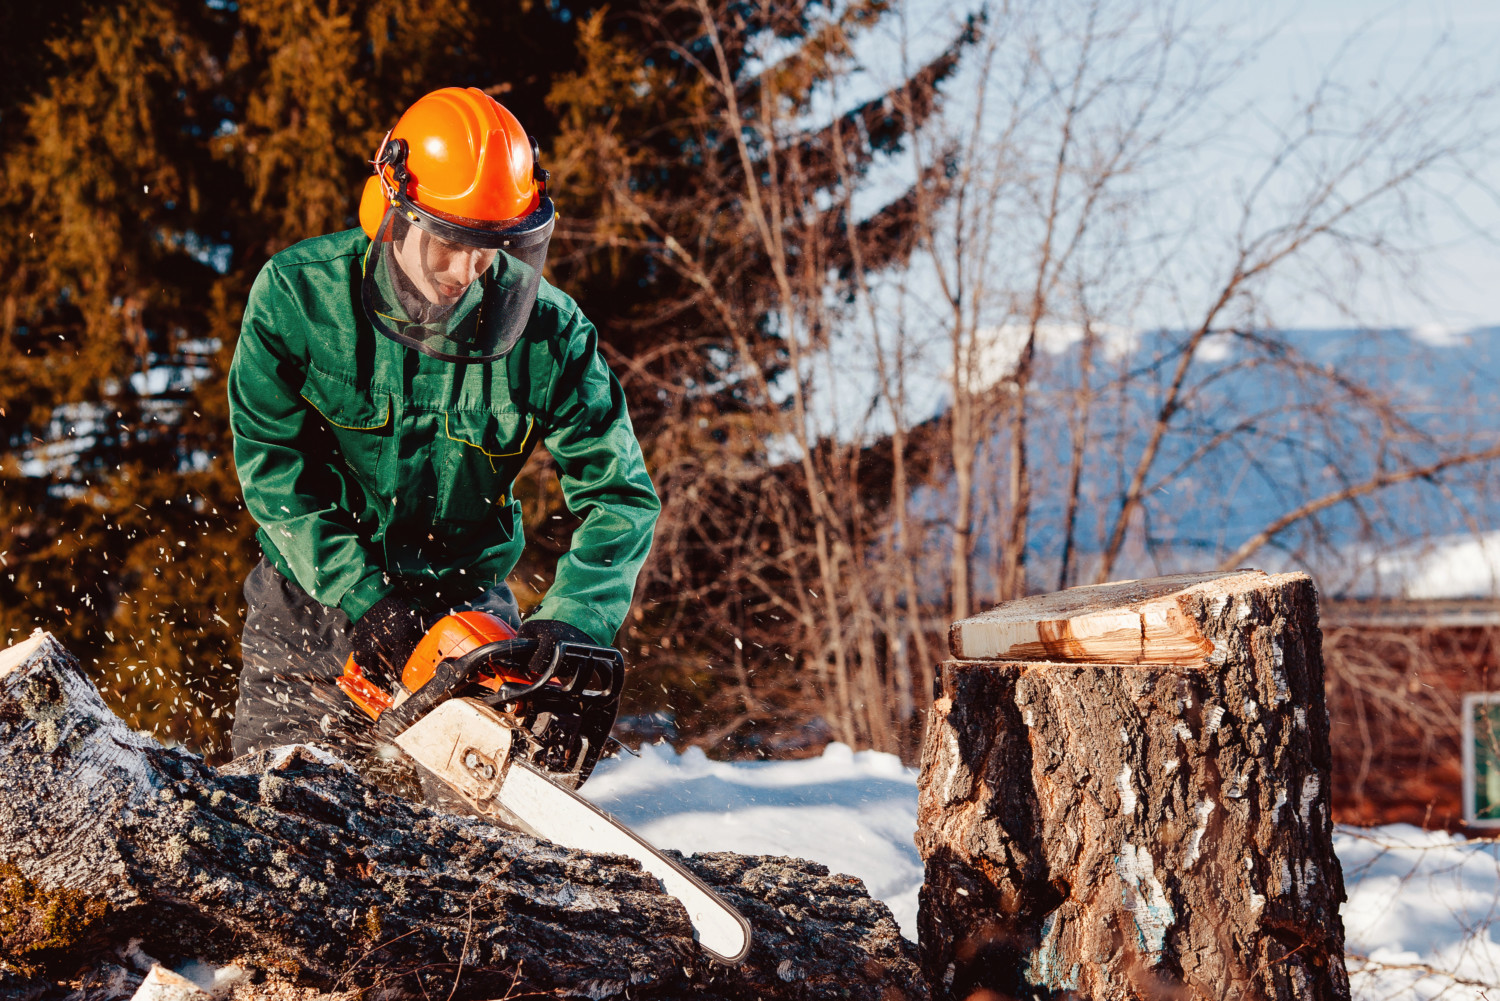 lumberjack worker with chainsaw in his hands saws fallen tree, chips and dust fly upwards, against blue sky.